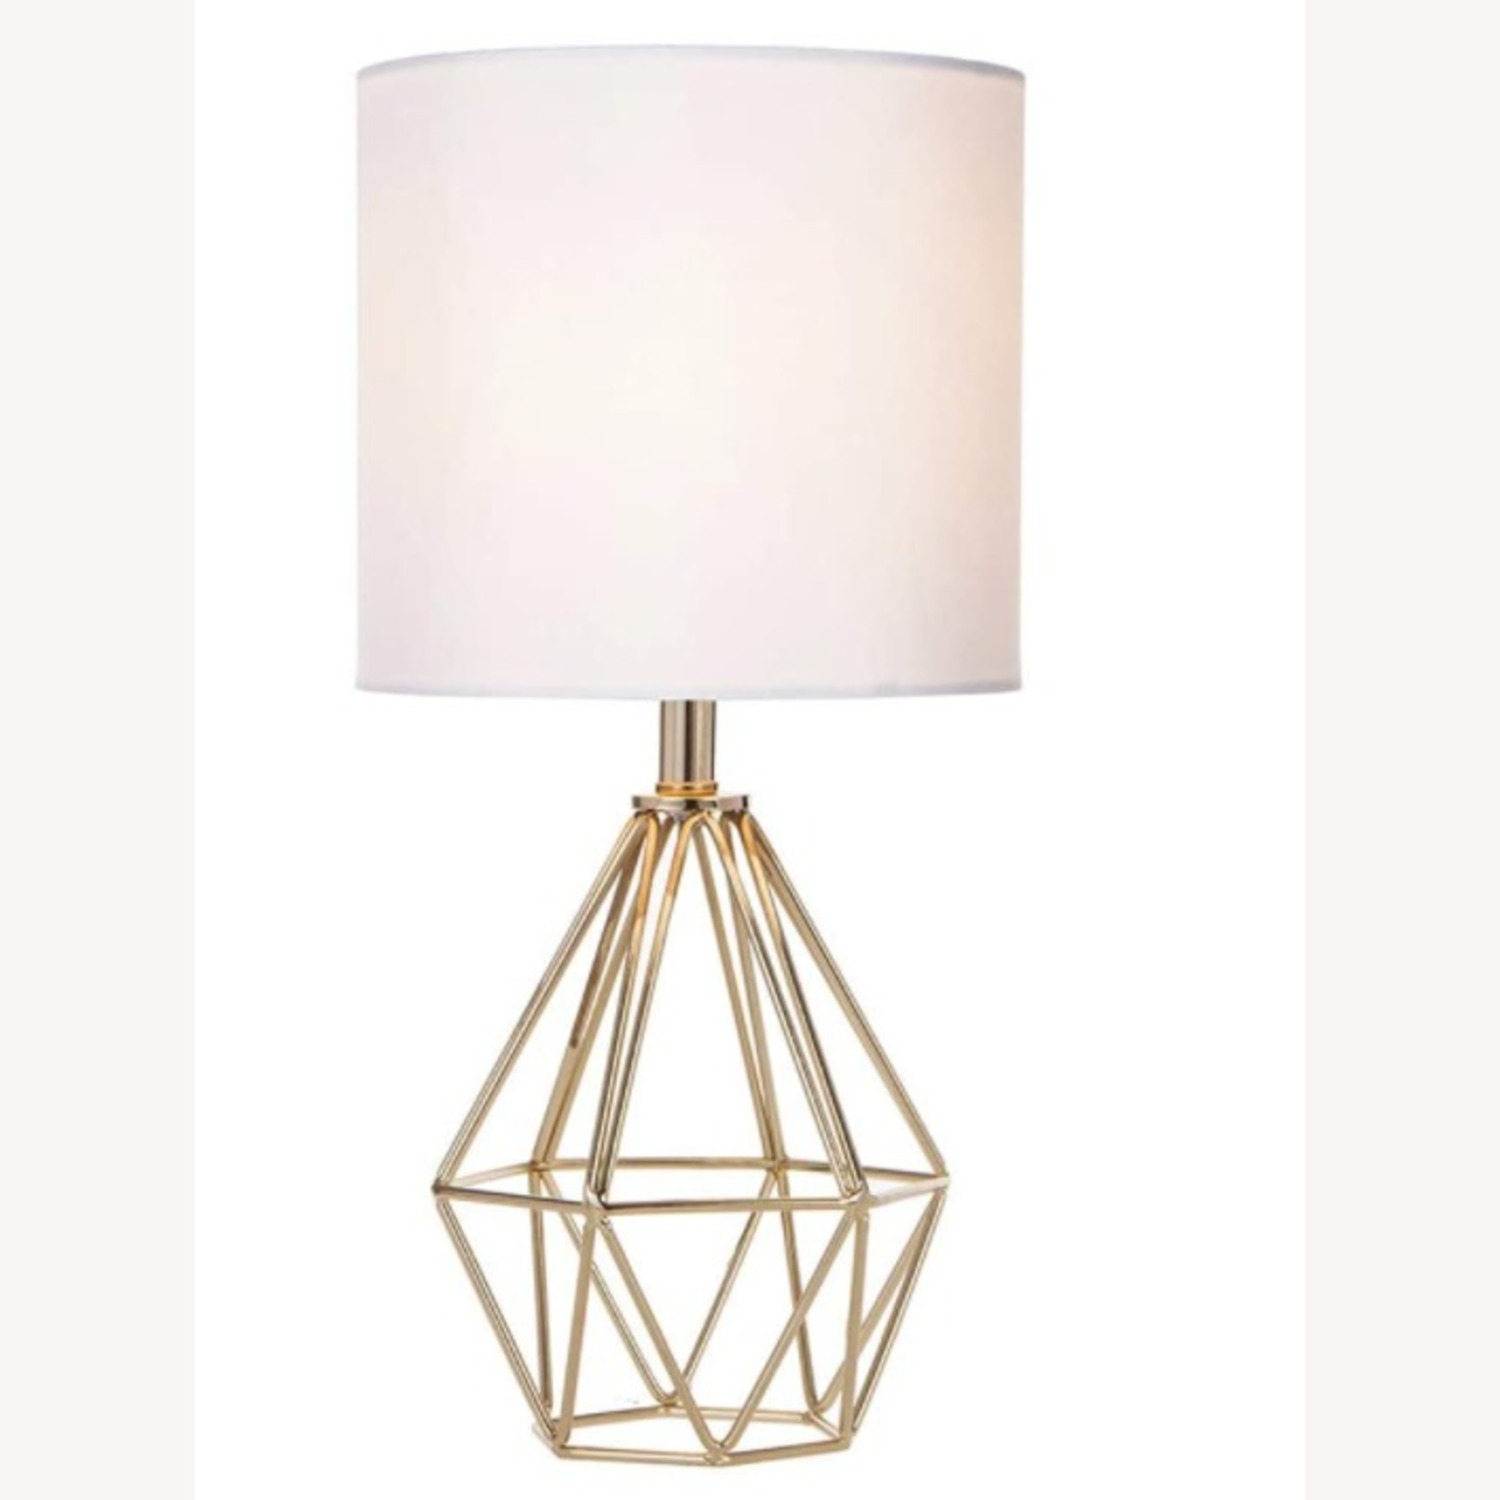 Modern Chic Desk Table Lamp with Gold Metal Base - image-1